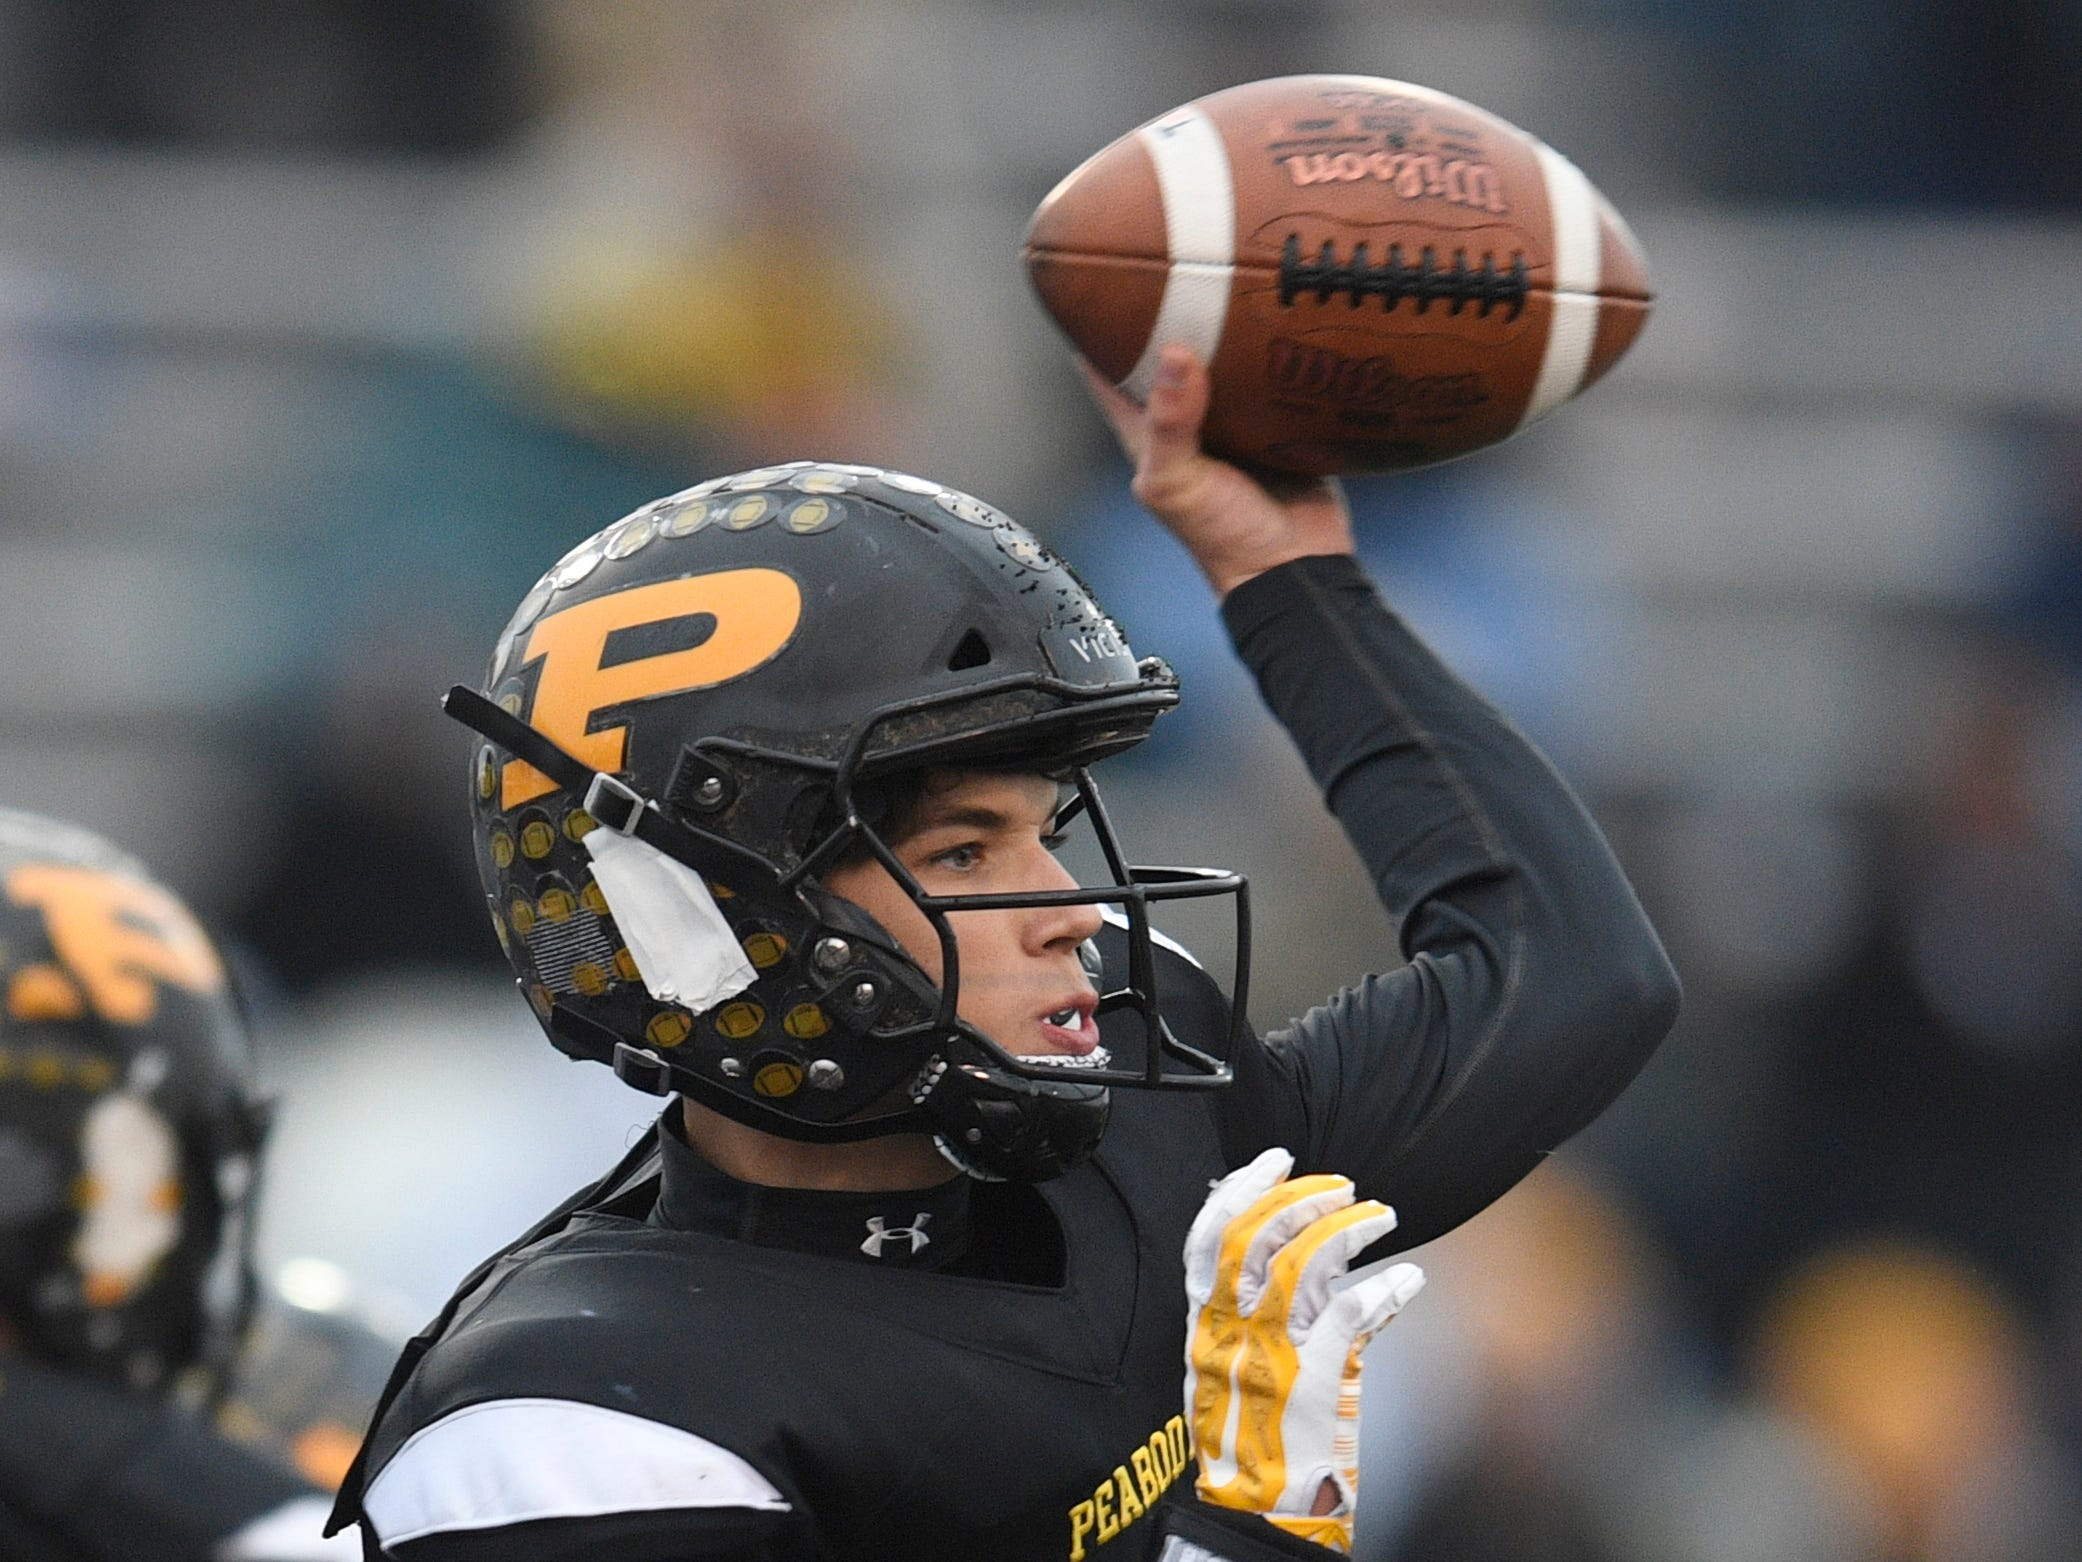 Peabody's Cooper Baugus (3), the game MVP, passes in the third quarter during the Class 2A BlueCross Bowl state championship at Tennessee Tech's Tucker Stadium in Cookeville, Tenn., on Thursday, Nov. 29, 2018.